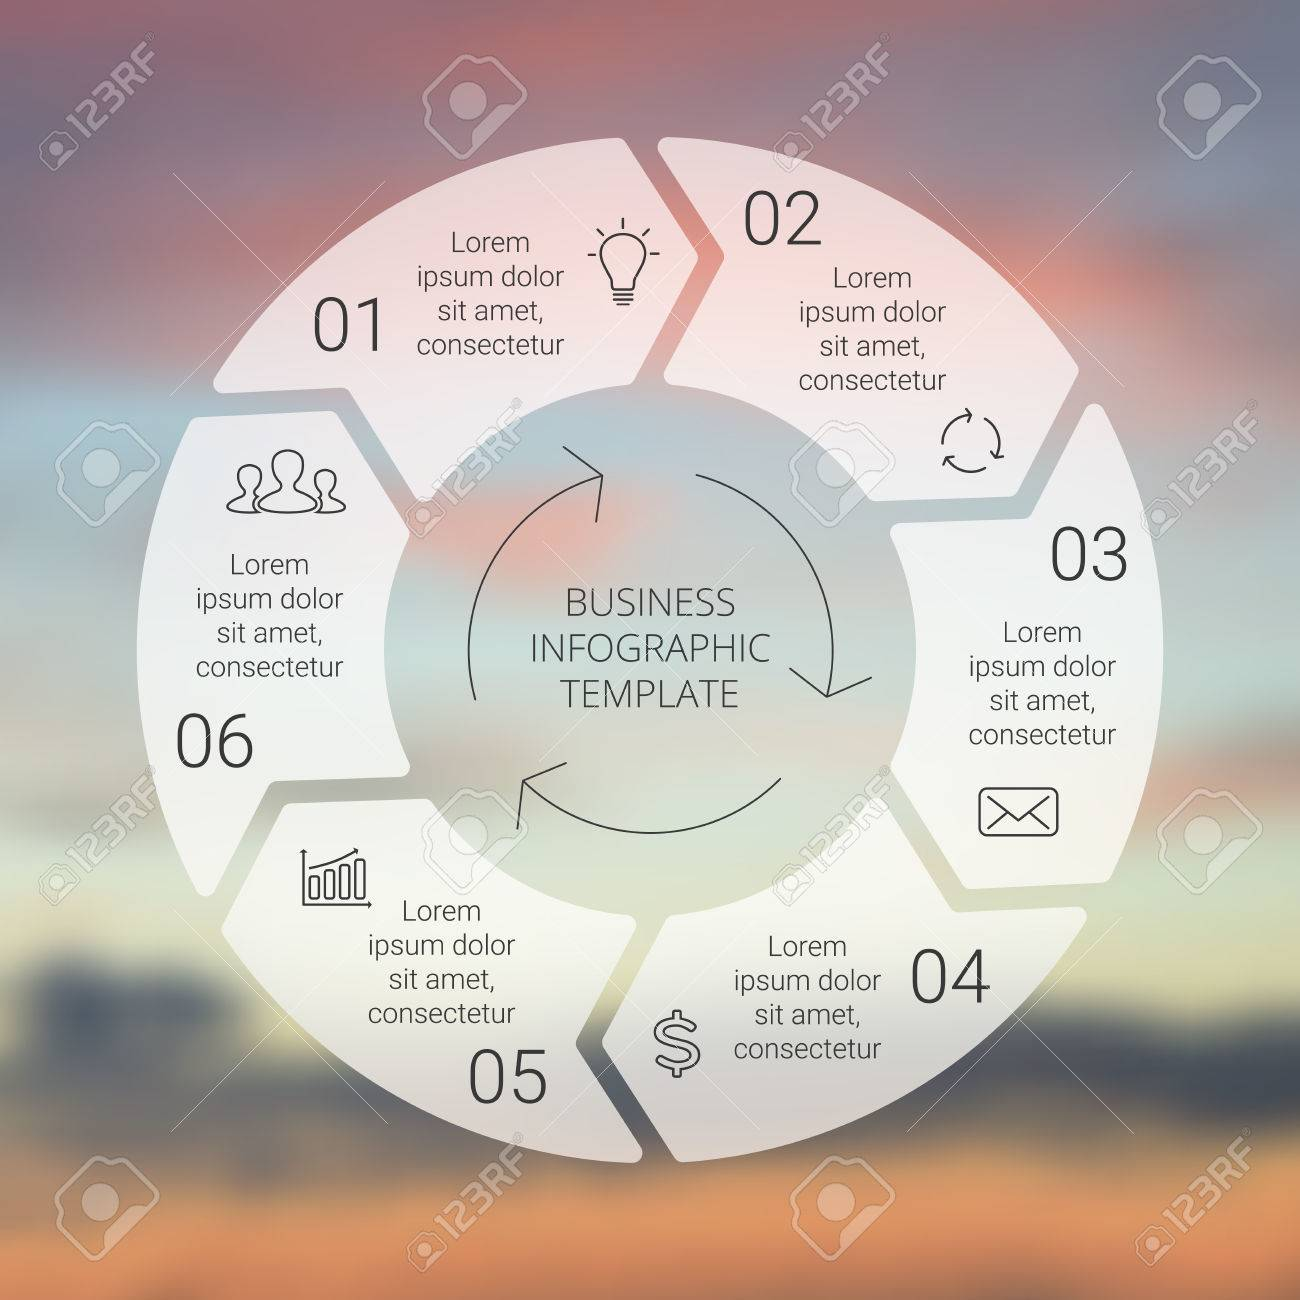 Process cycling arrow by arrow royalty free stock images image - Circle Line Arrows Infographic Template For Cycle Diagram Graph Presentation And Round Chart